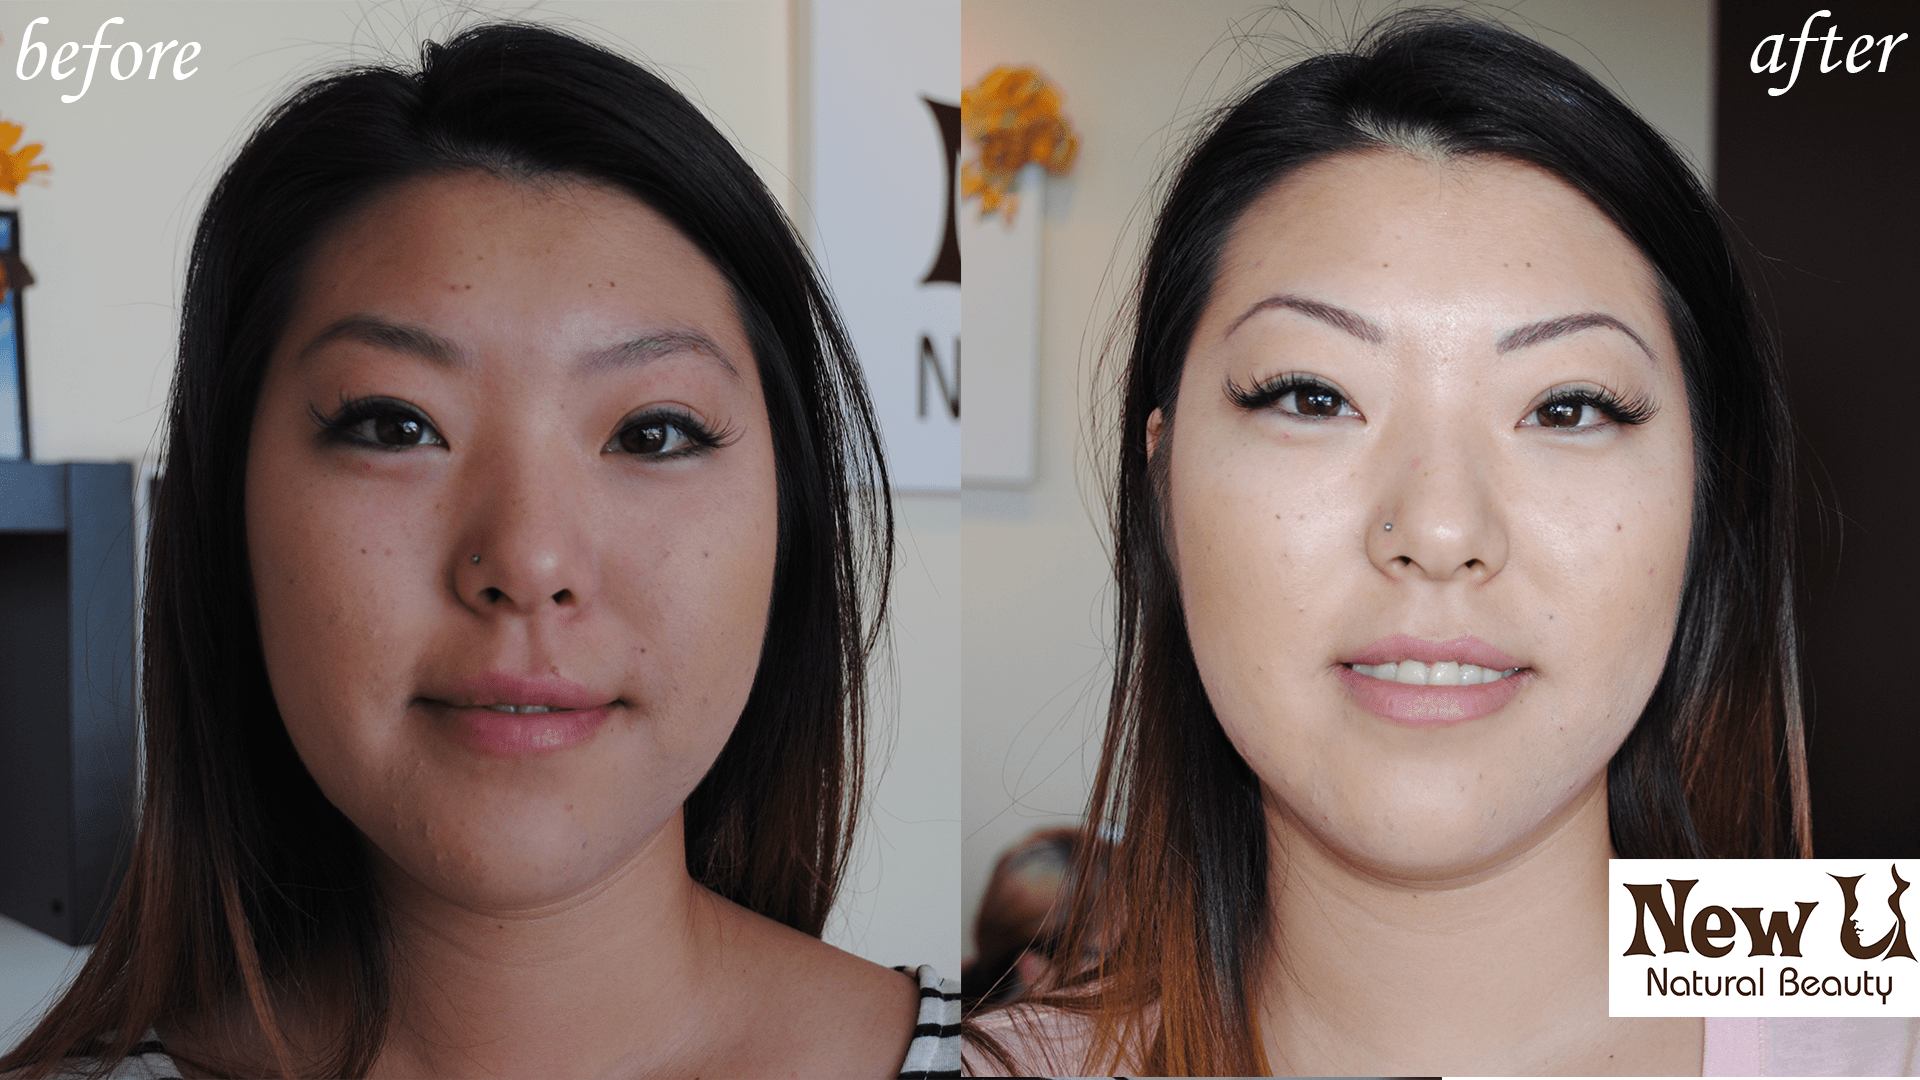 Permanent Makeup 3 Las Vegas Before and After